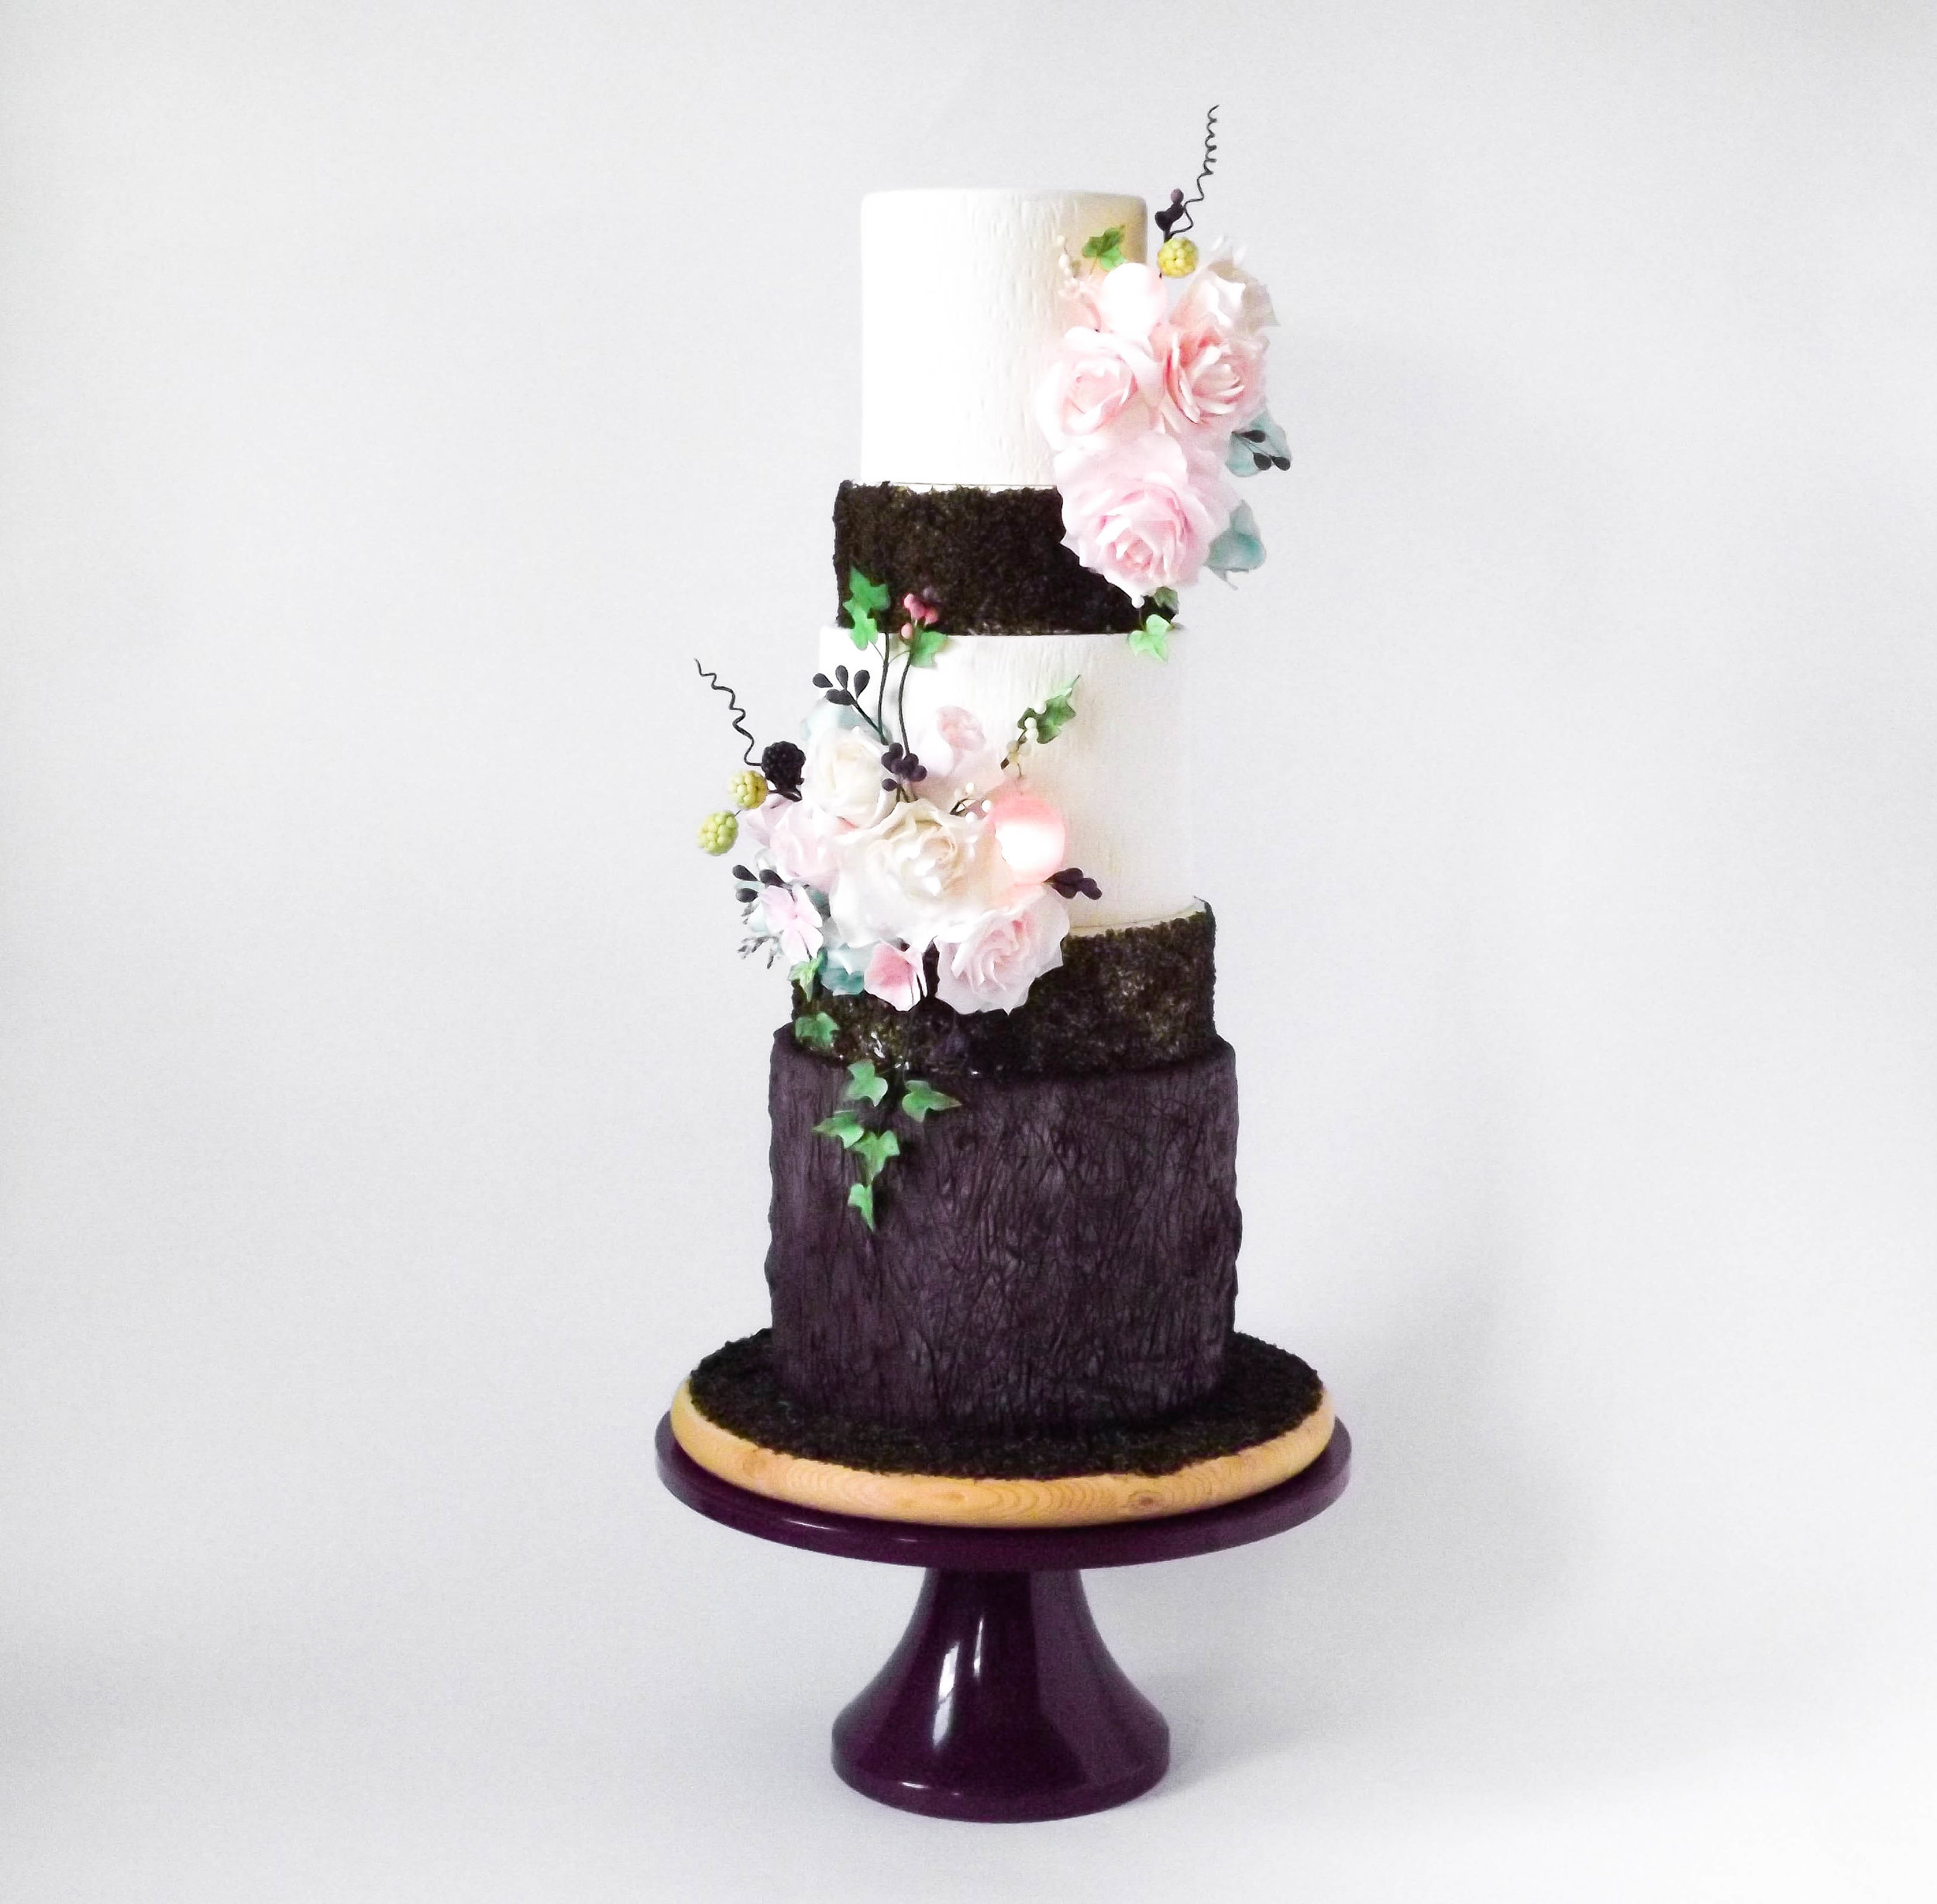 Woodland Fairies - Commonwealth Cake Company - Charlottesville - Wedding Cake.jpg